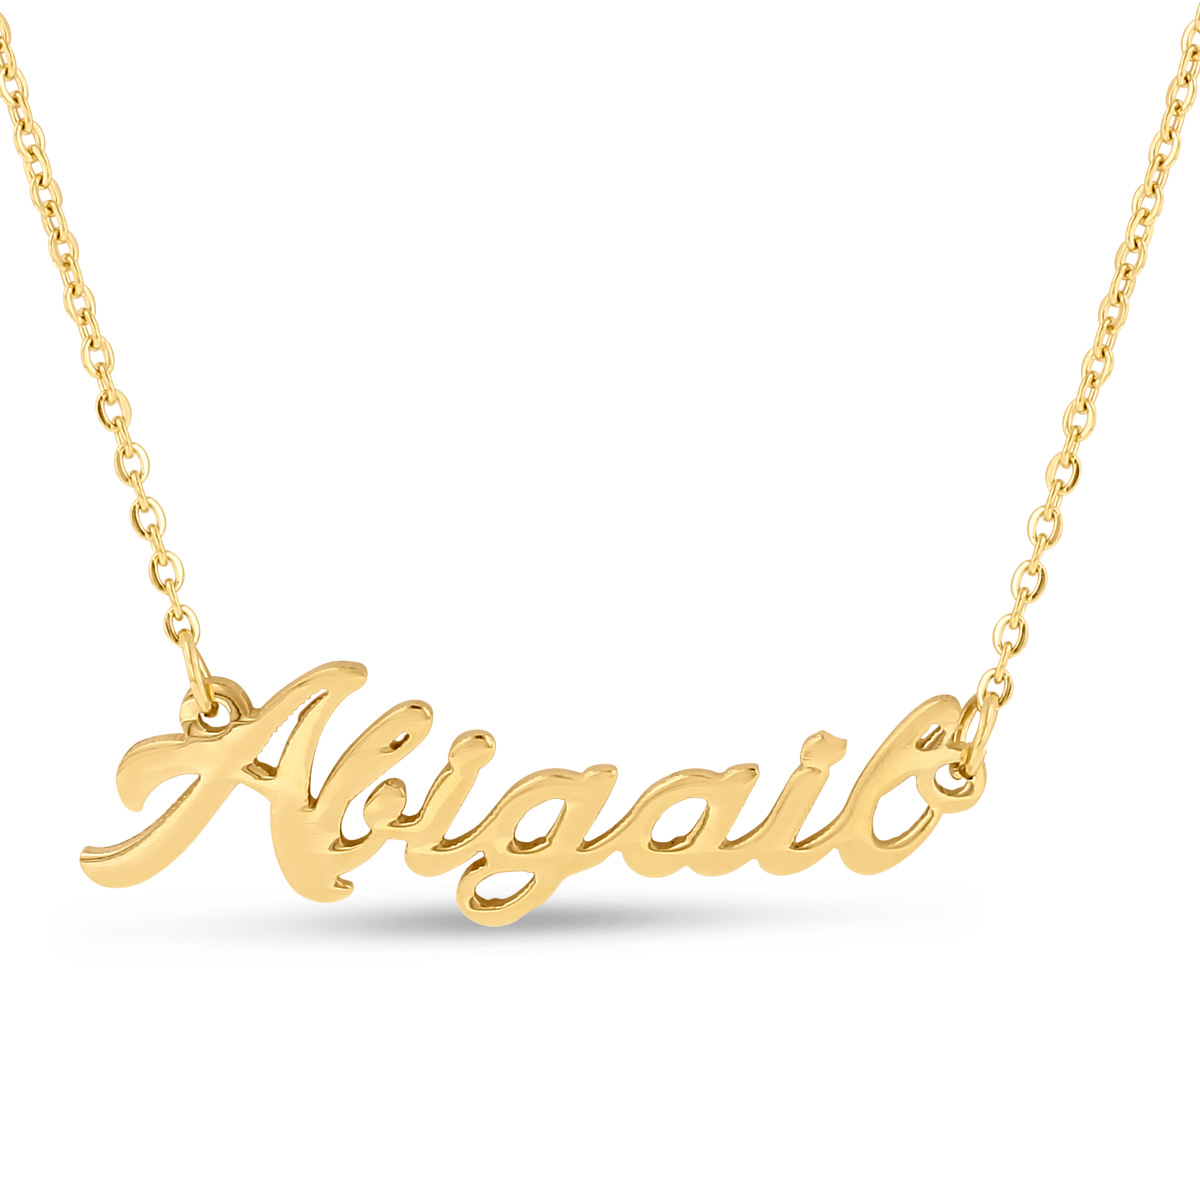 Personalized name necklace silvergold plated 100 names personalized name necklace silver gold plated 100 names mozeypictures Gallery